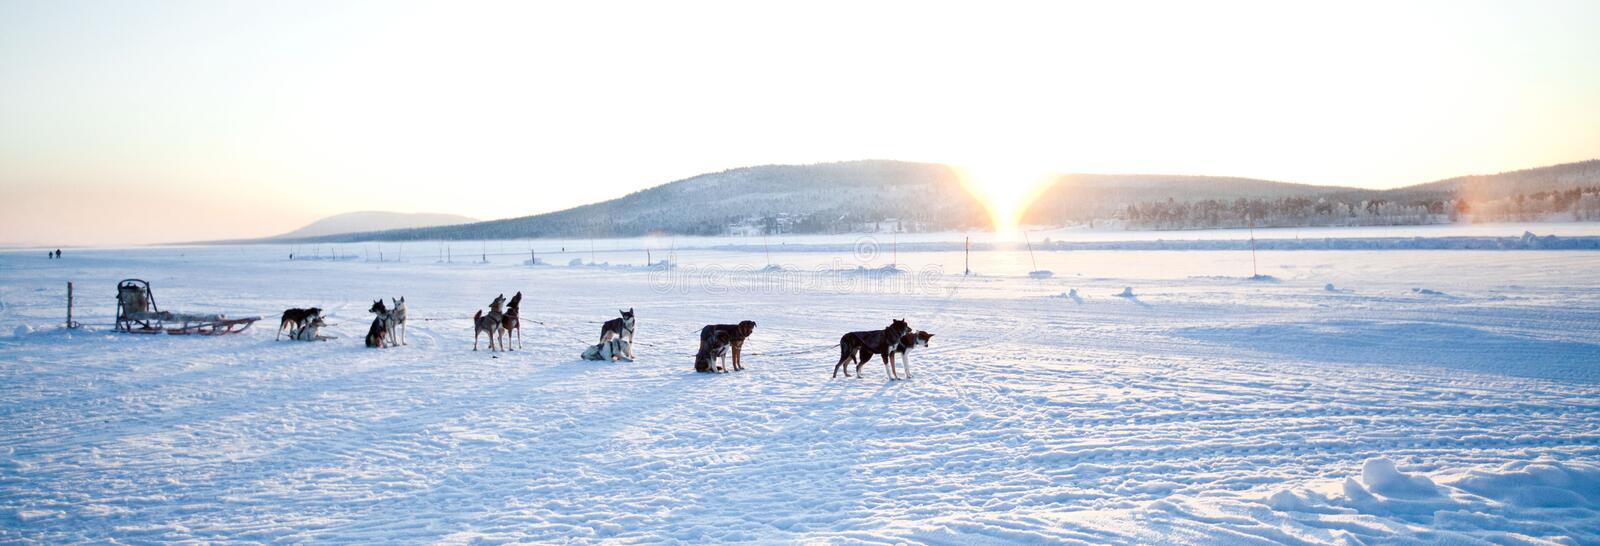 Dog Sledding royaltyfri bild